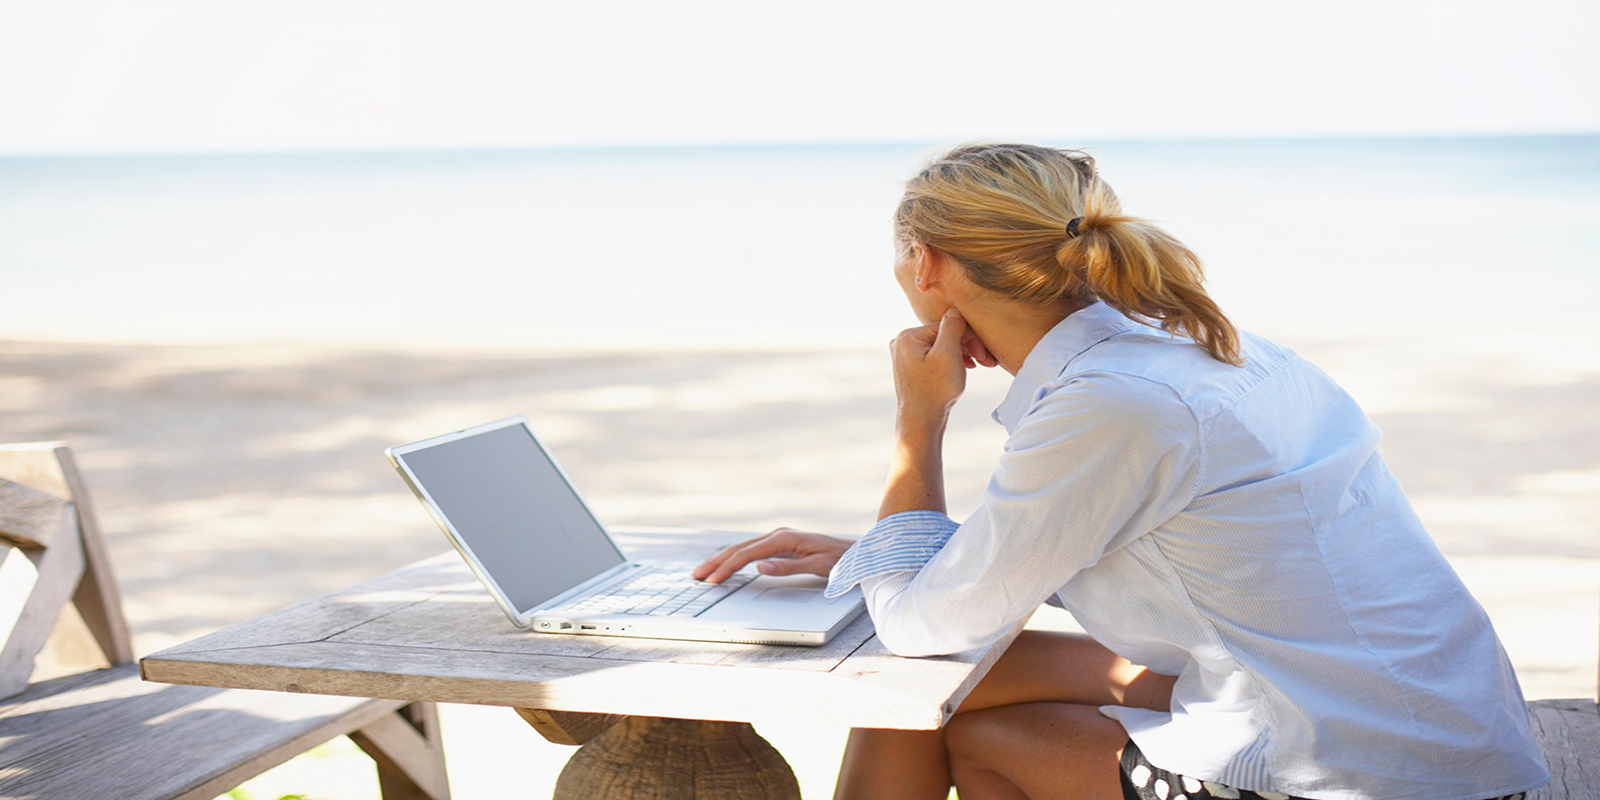 southernmost-laptop-woman-3